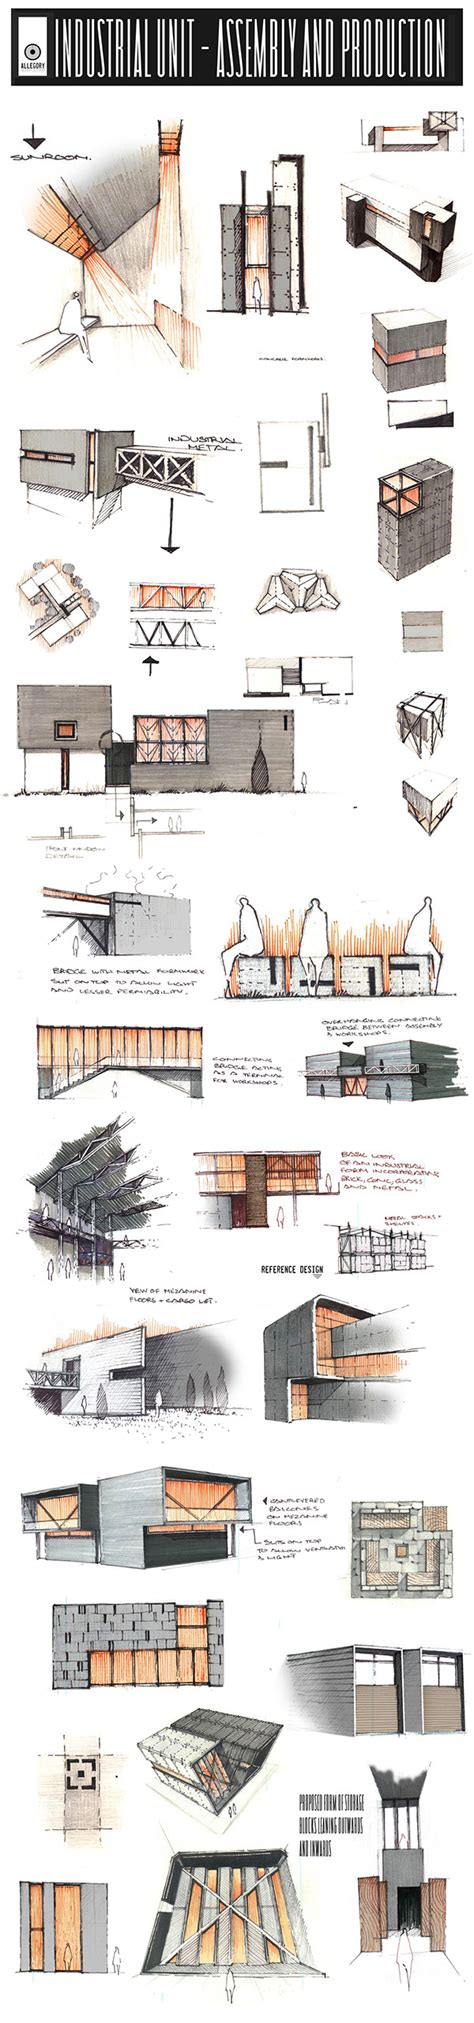 design proposal drawings professional design proposals under development on